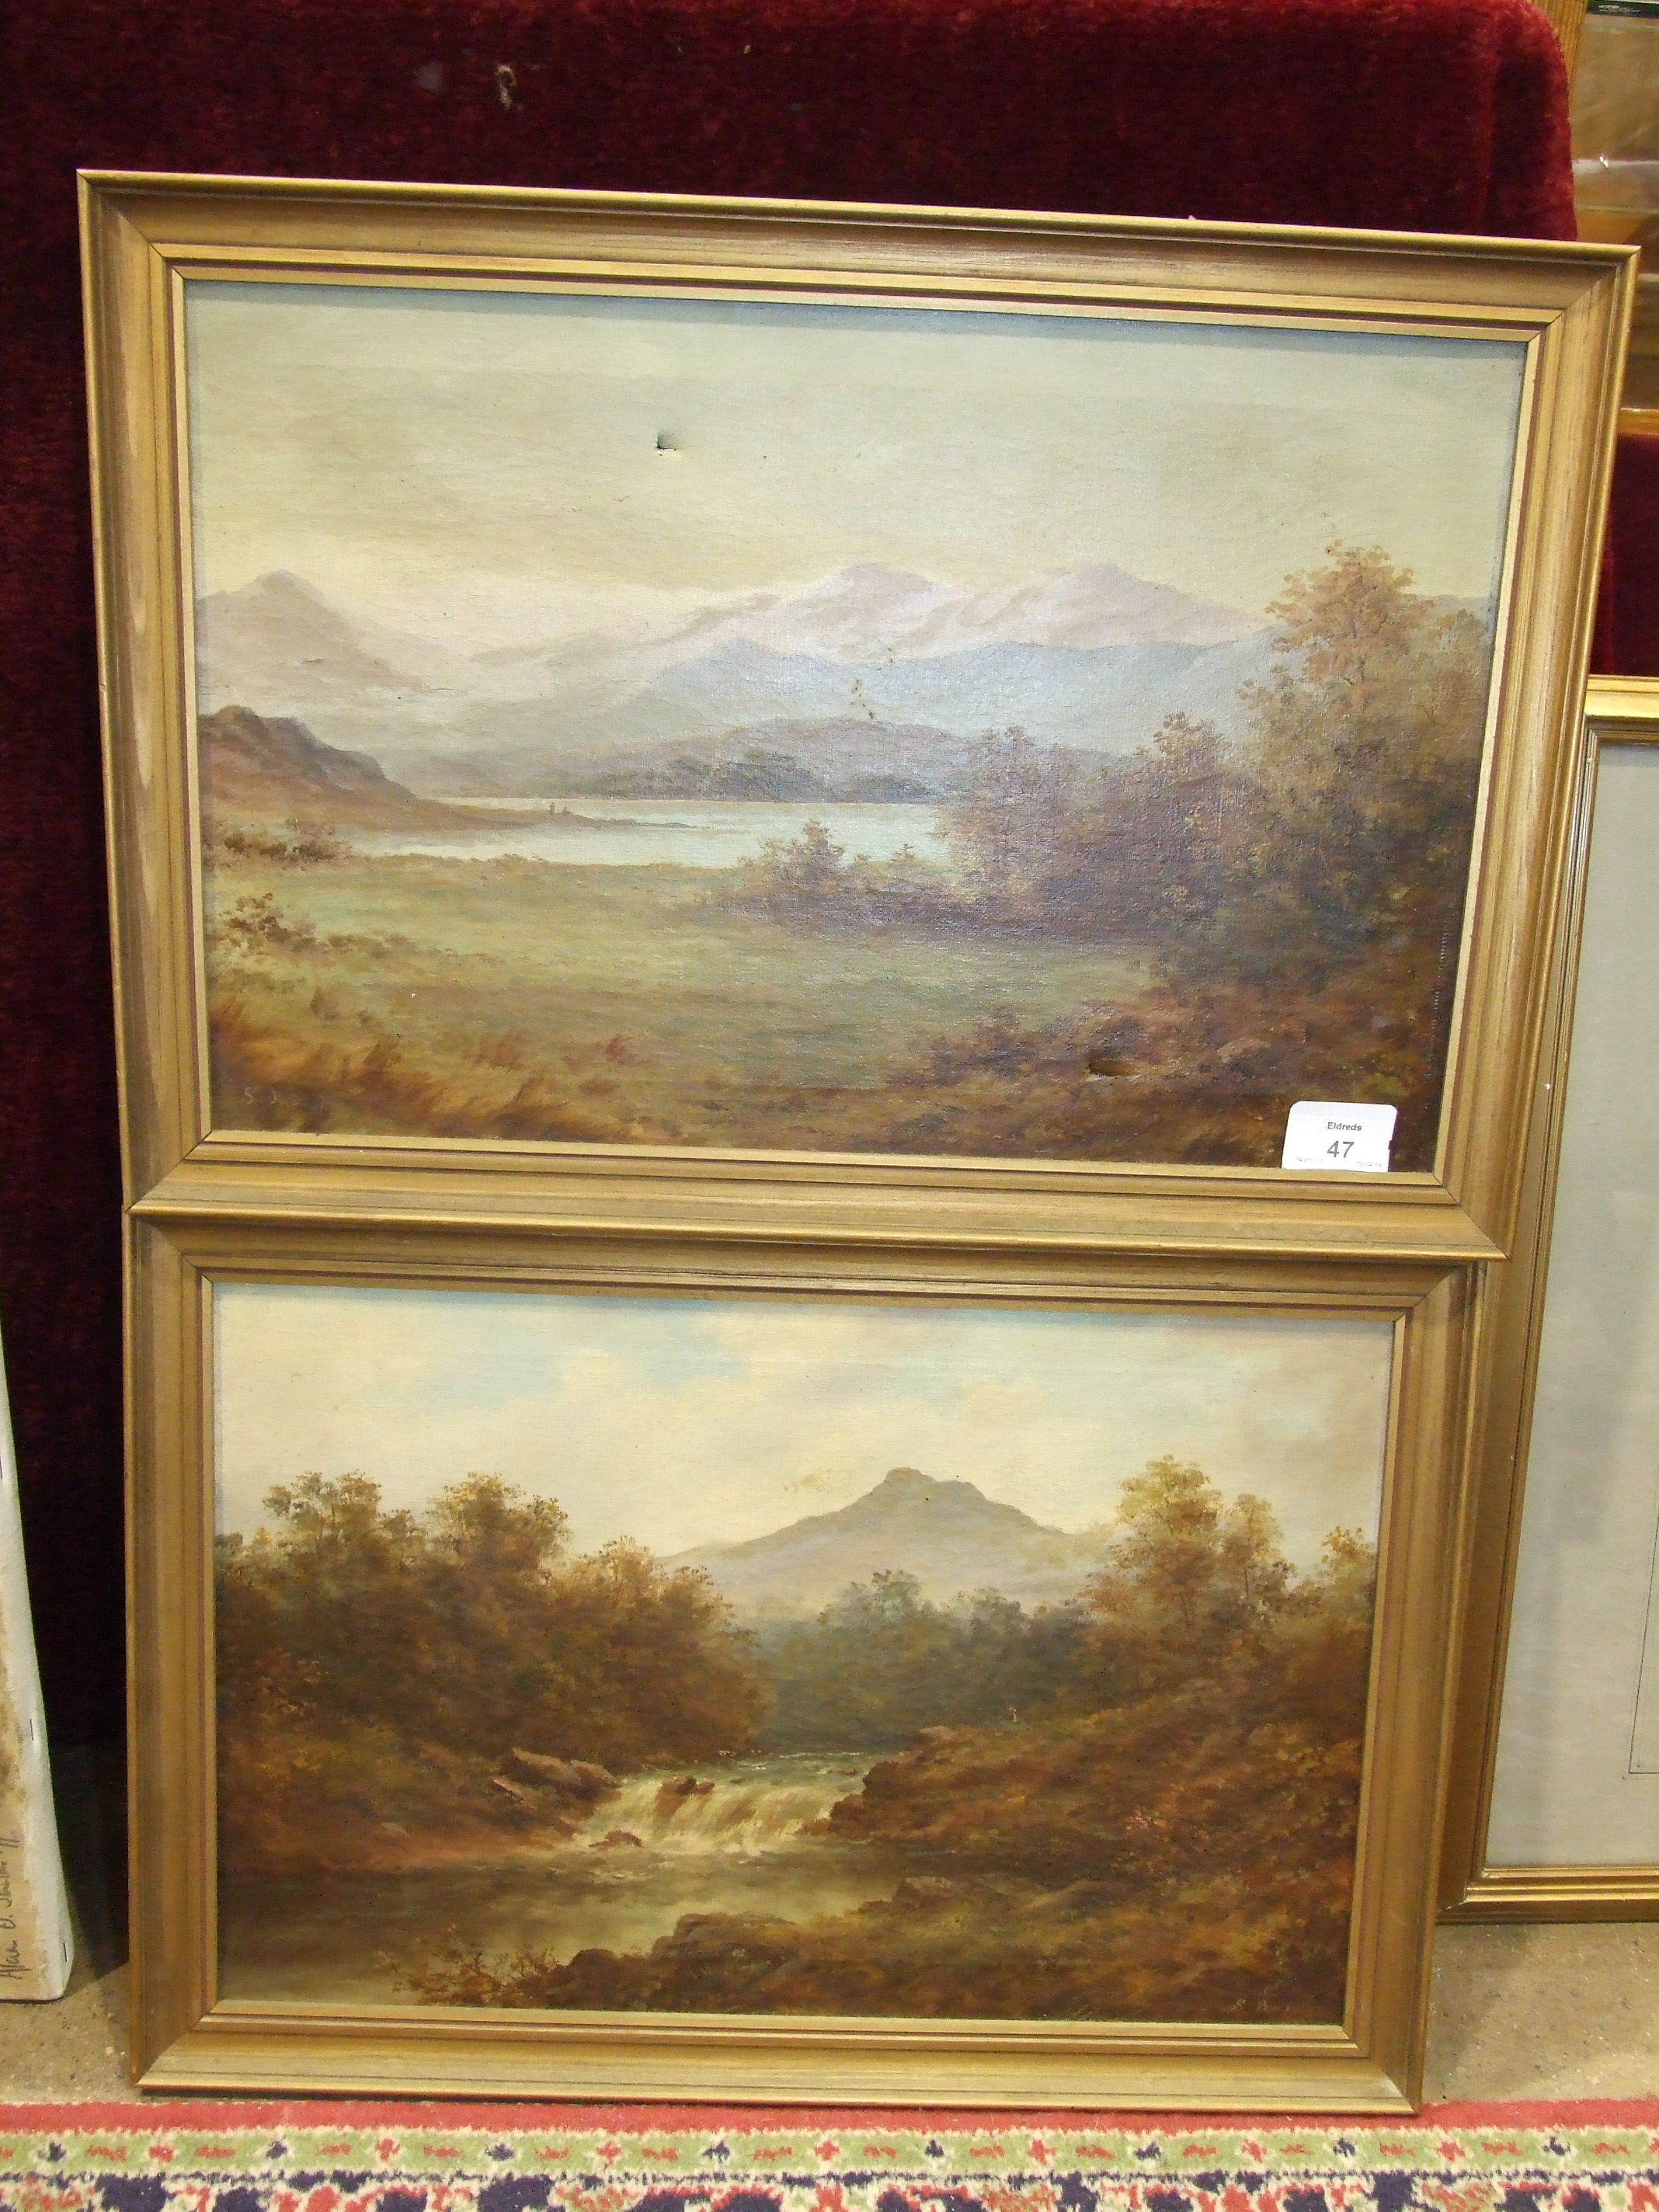 Lot 47 - S Barton, River landscape, Possibly Wales, signed oil on canvas, 29 x 44cm, a companion, a pair, (